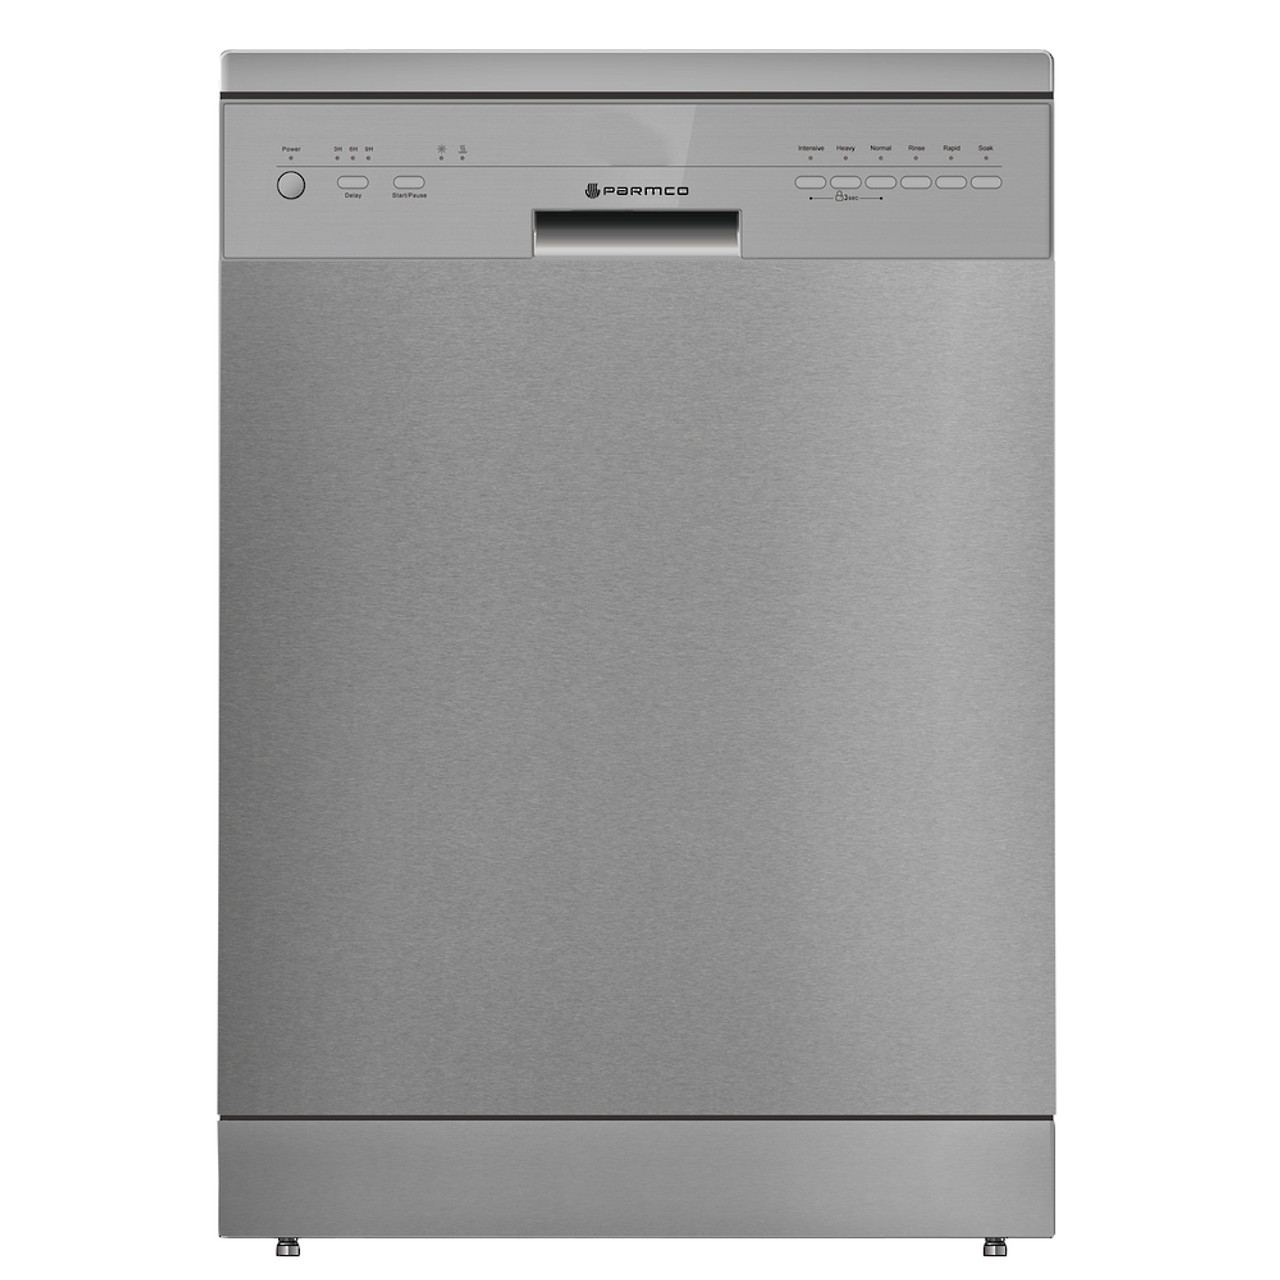 PARMCO 600mm Freestanding Dishwasher, Economy, Stainless Steel